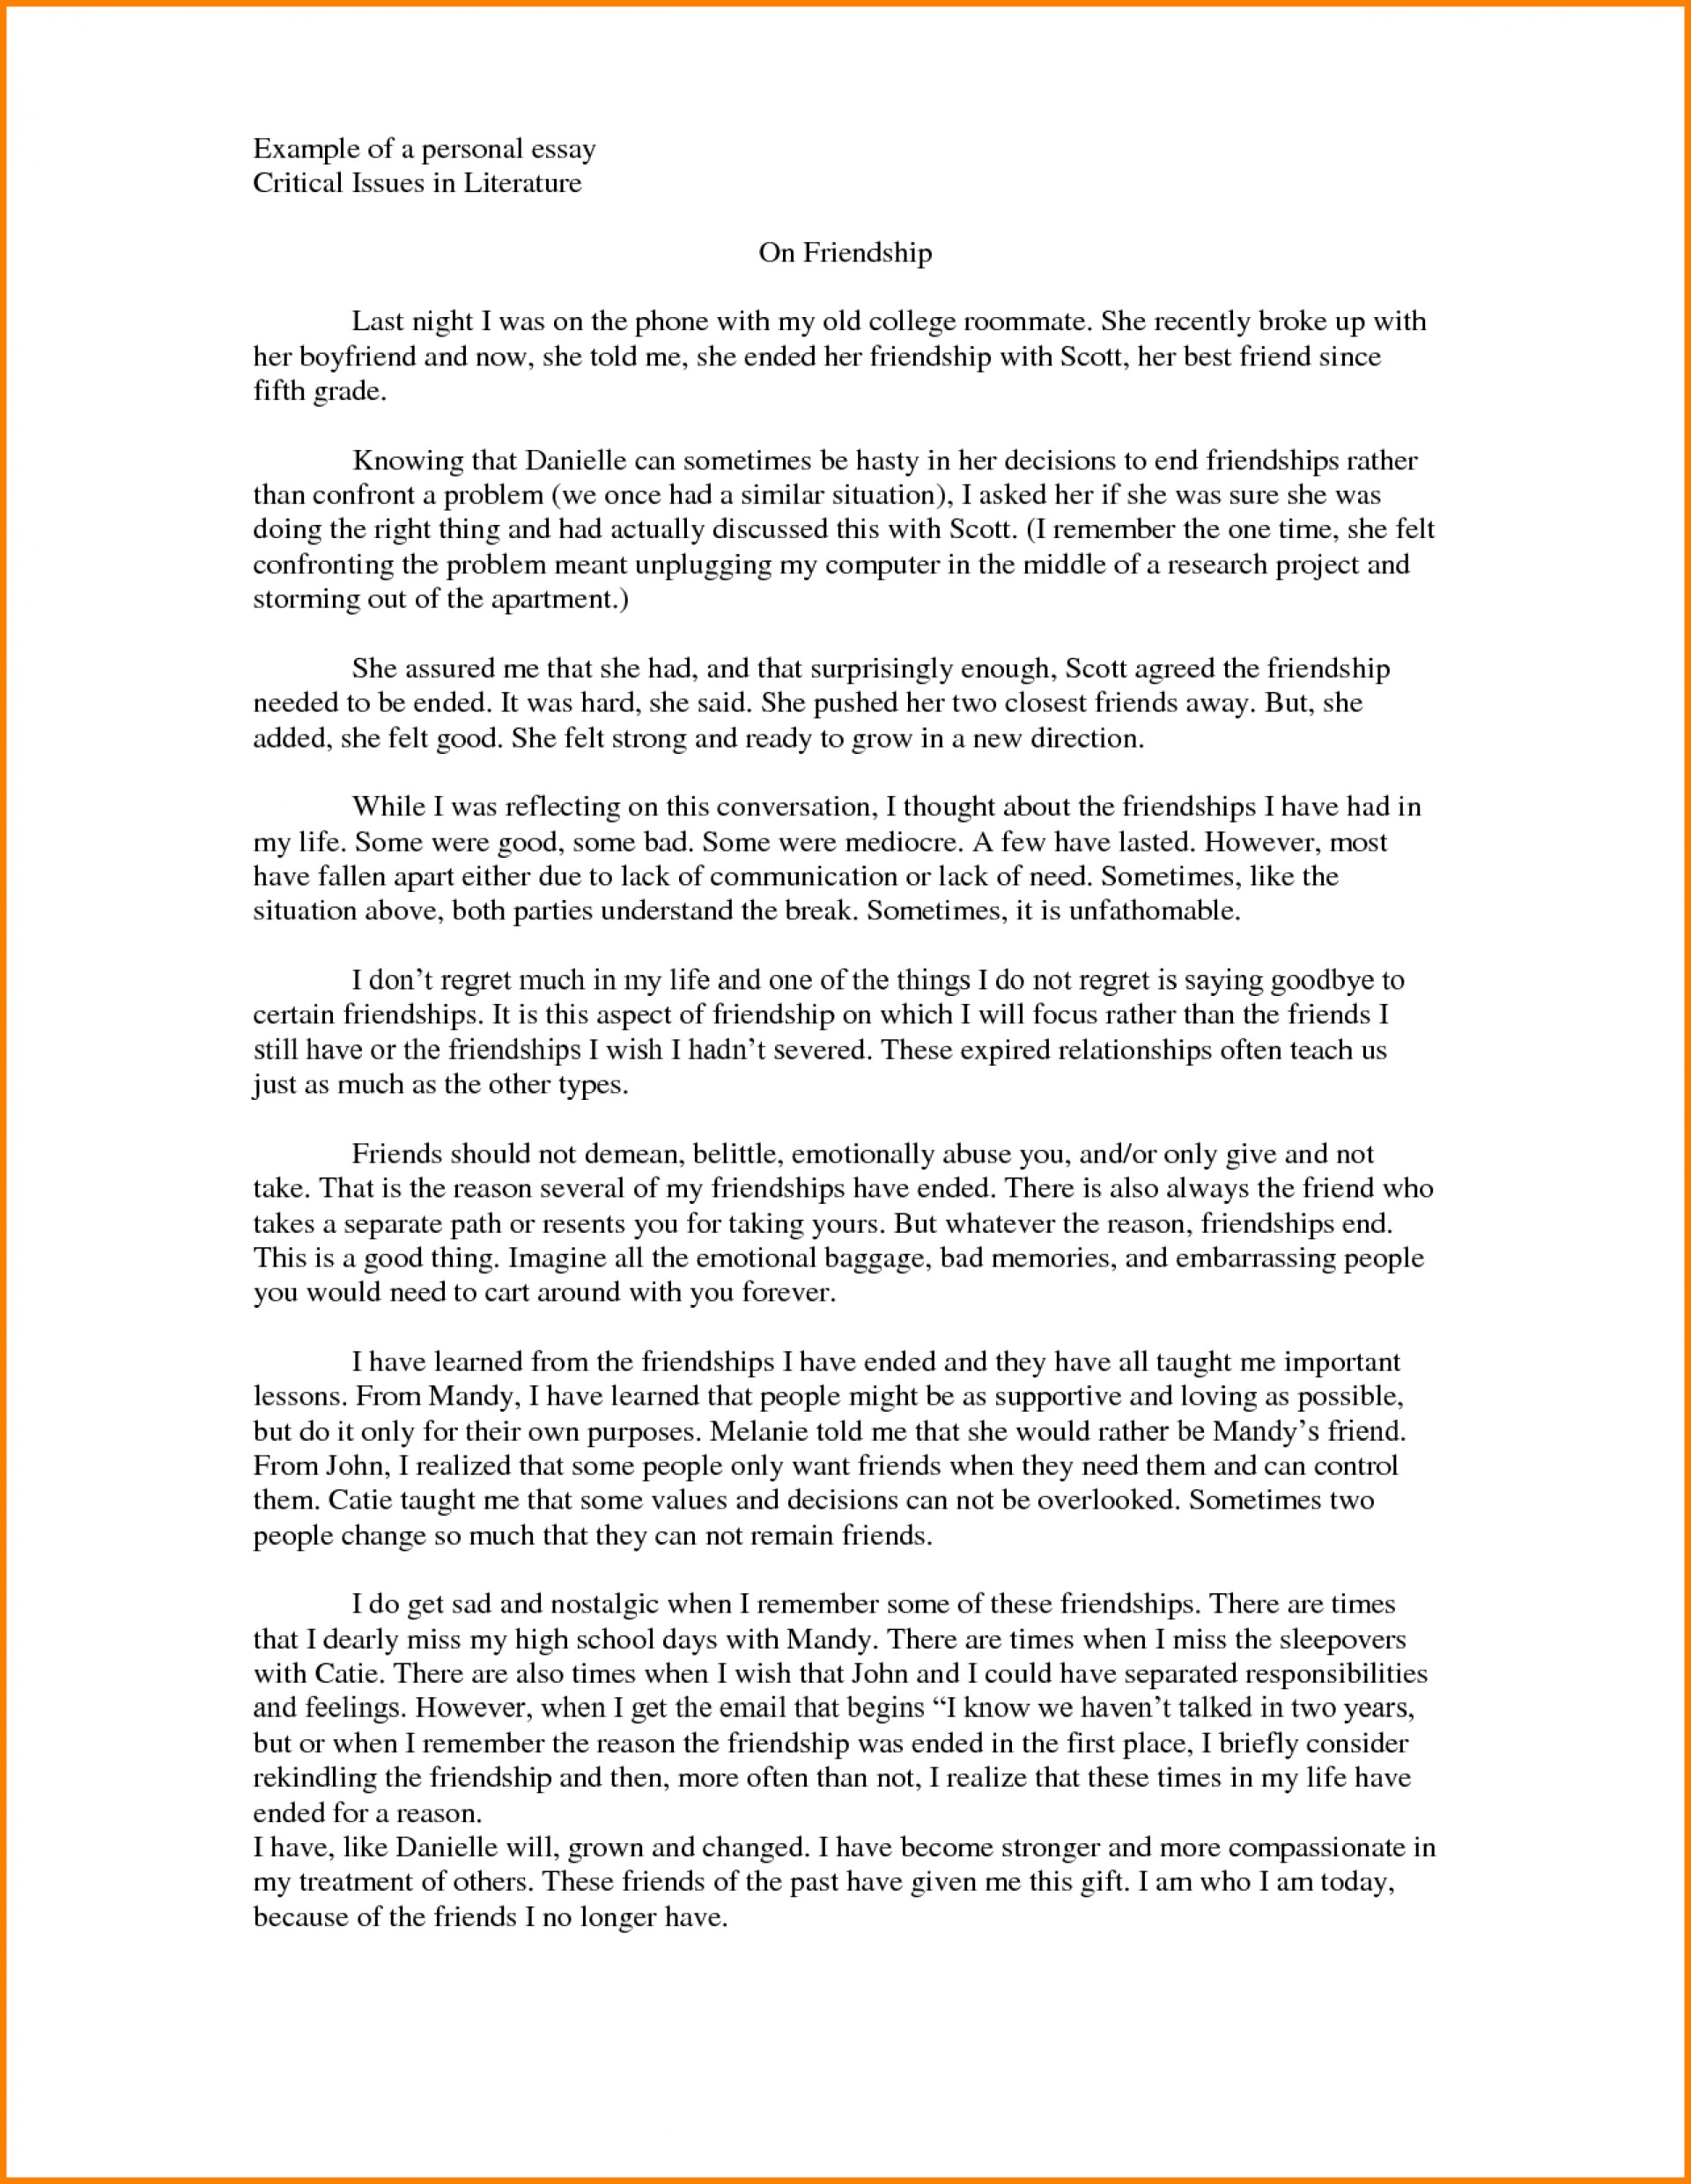 001 Personal Statement Essayspersonaljpg Writing Essays L Submissions Best Essay 2017 Submit To Buzzfeed Salon 1920